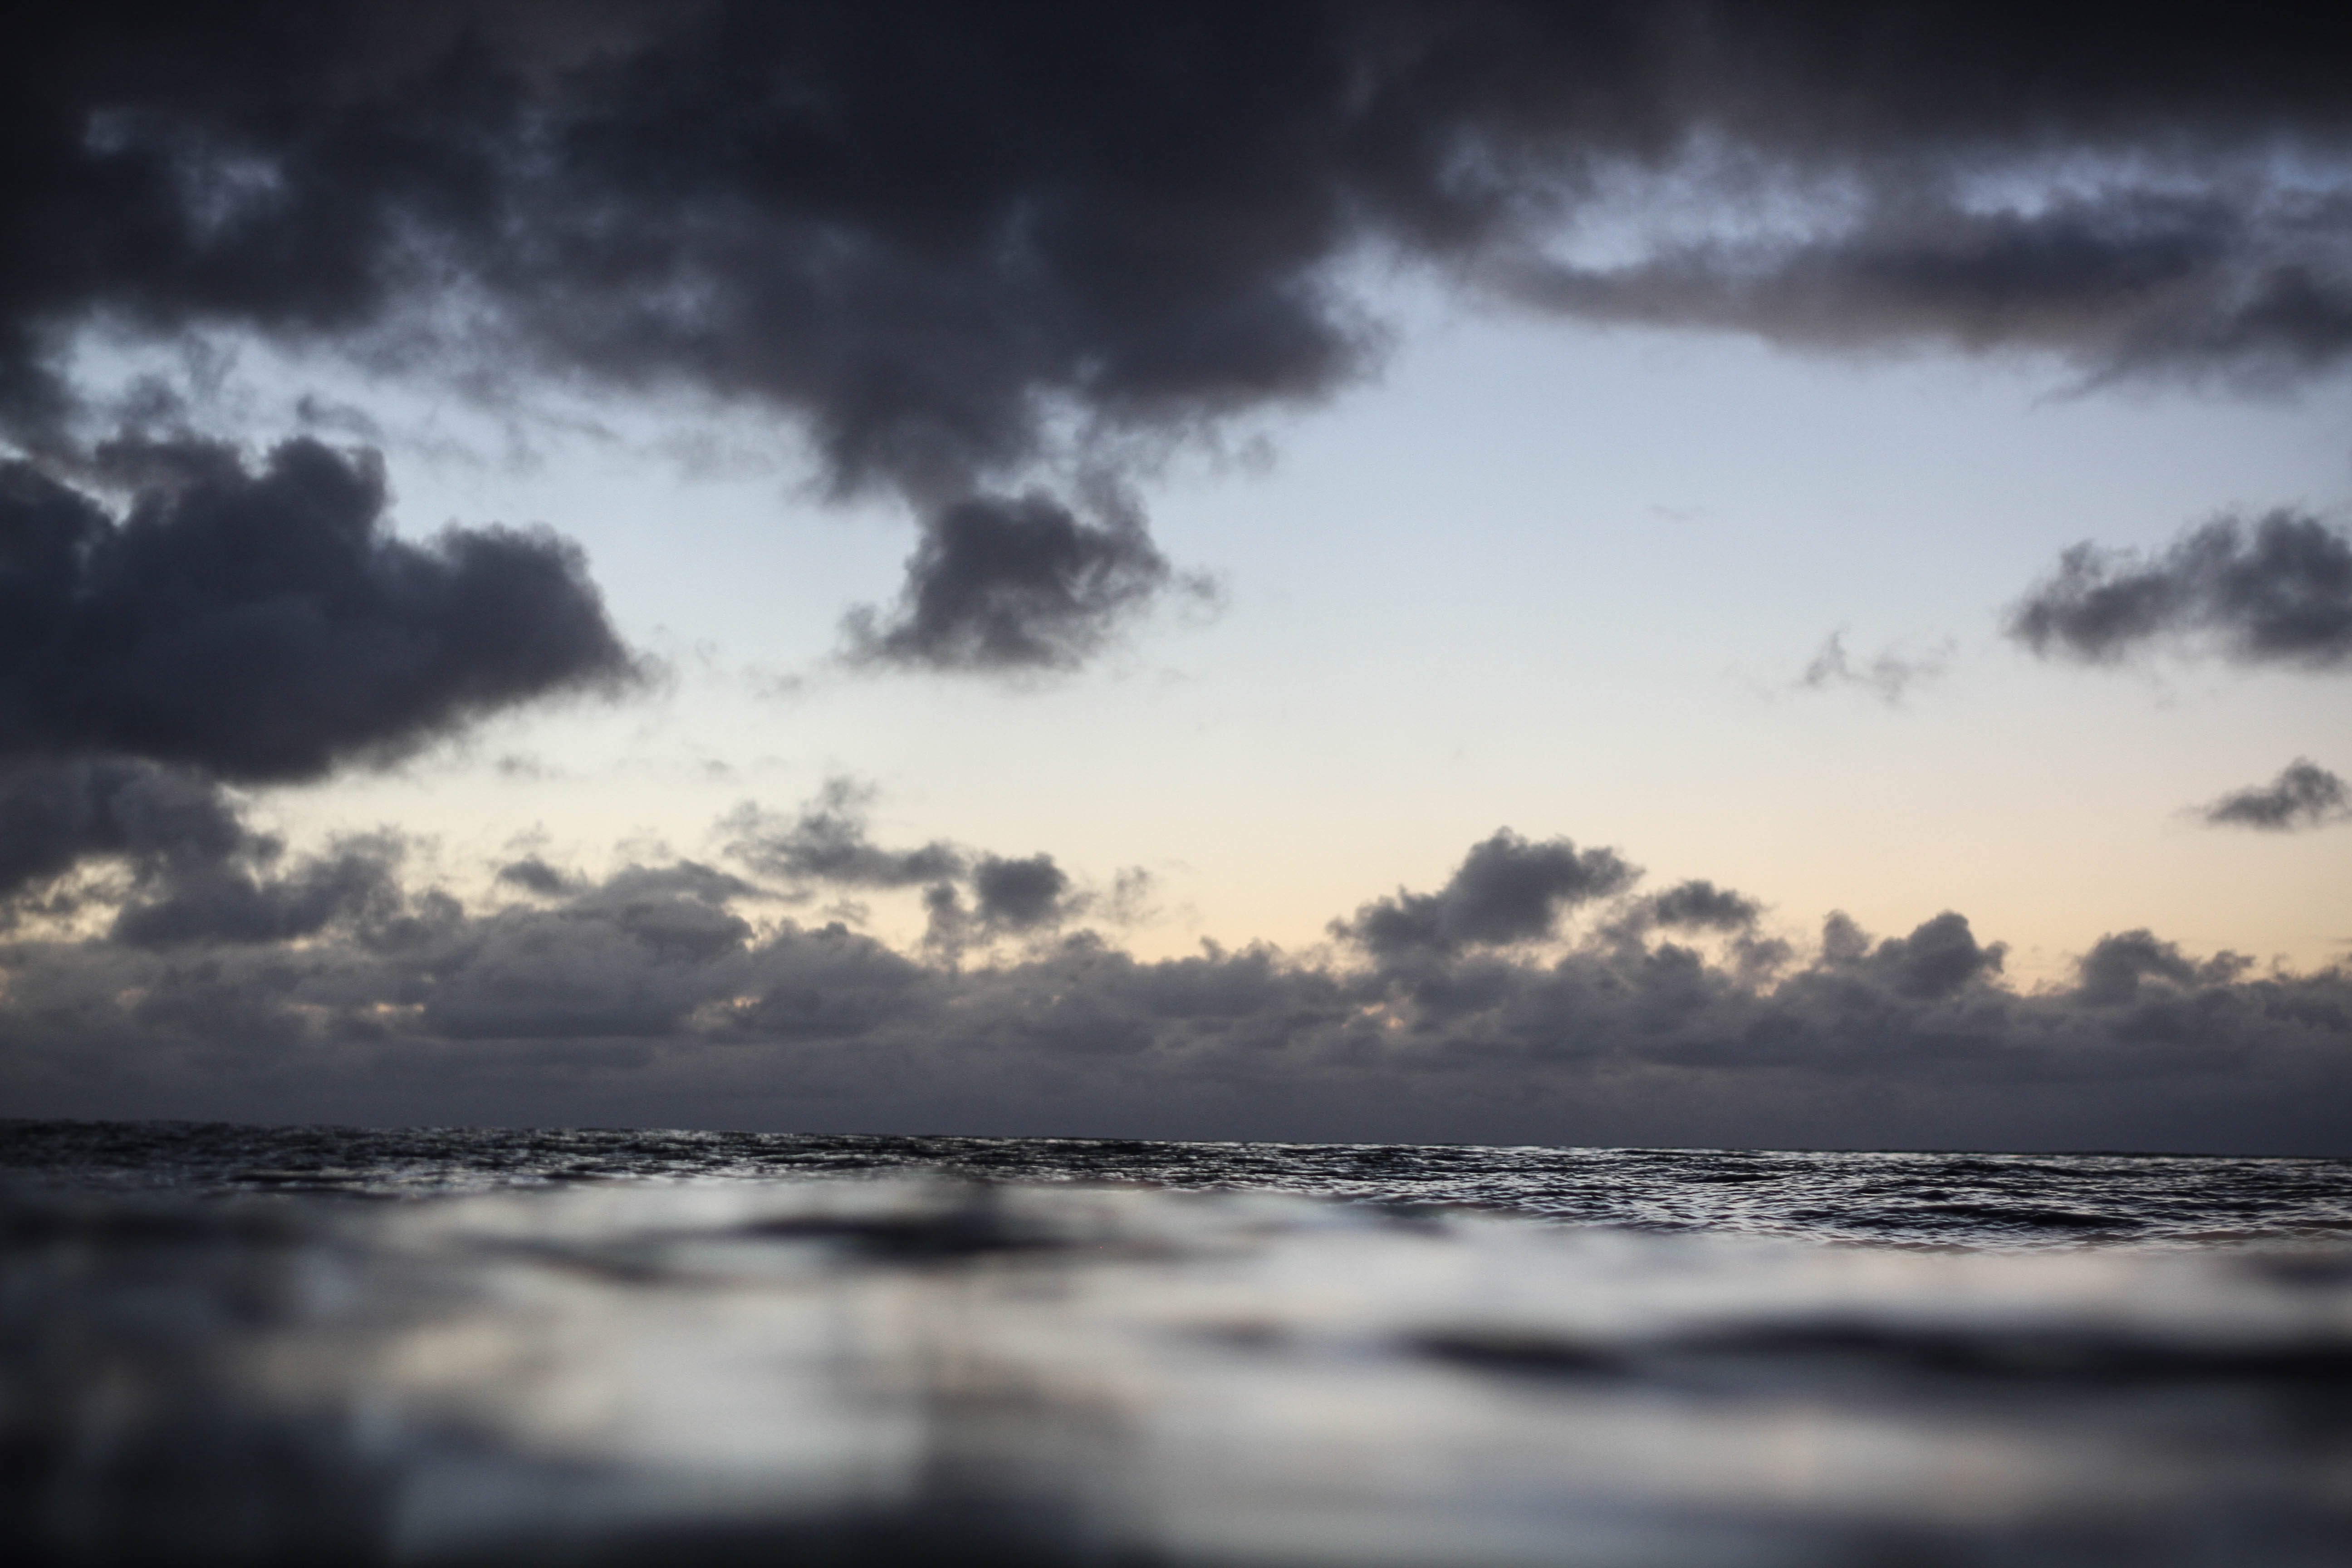 The view of a stormy horizon in the evening from the ocean surface in Waimea Bay